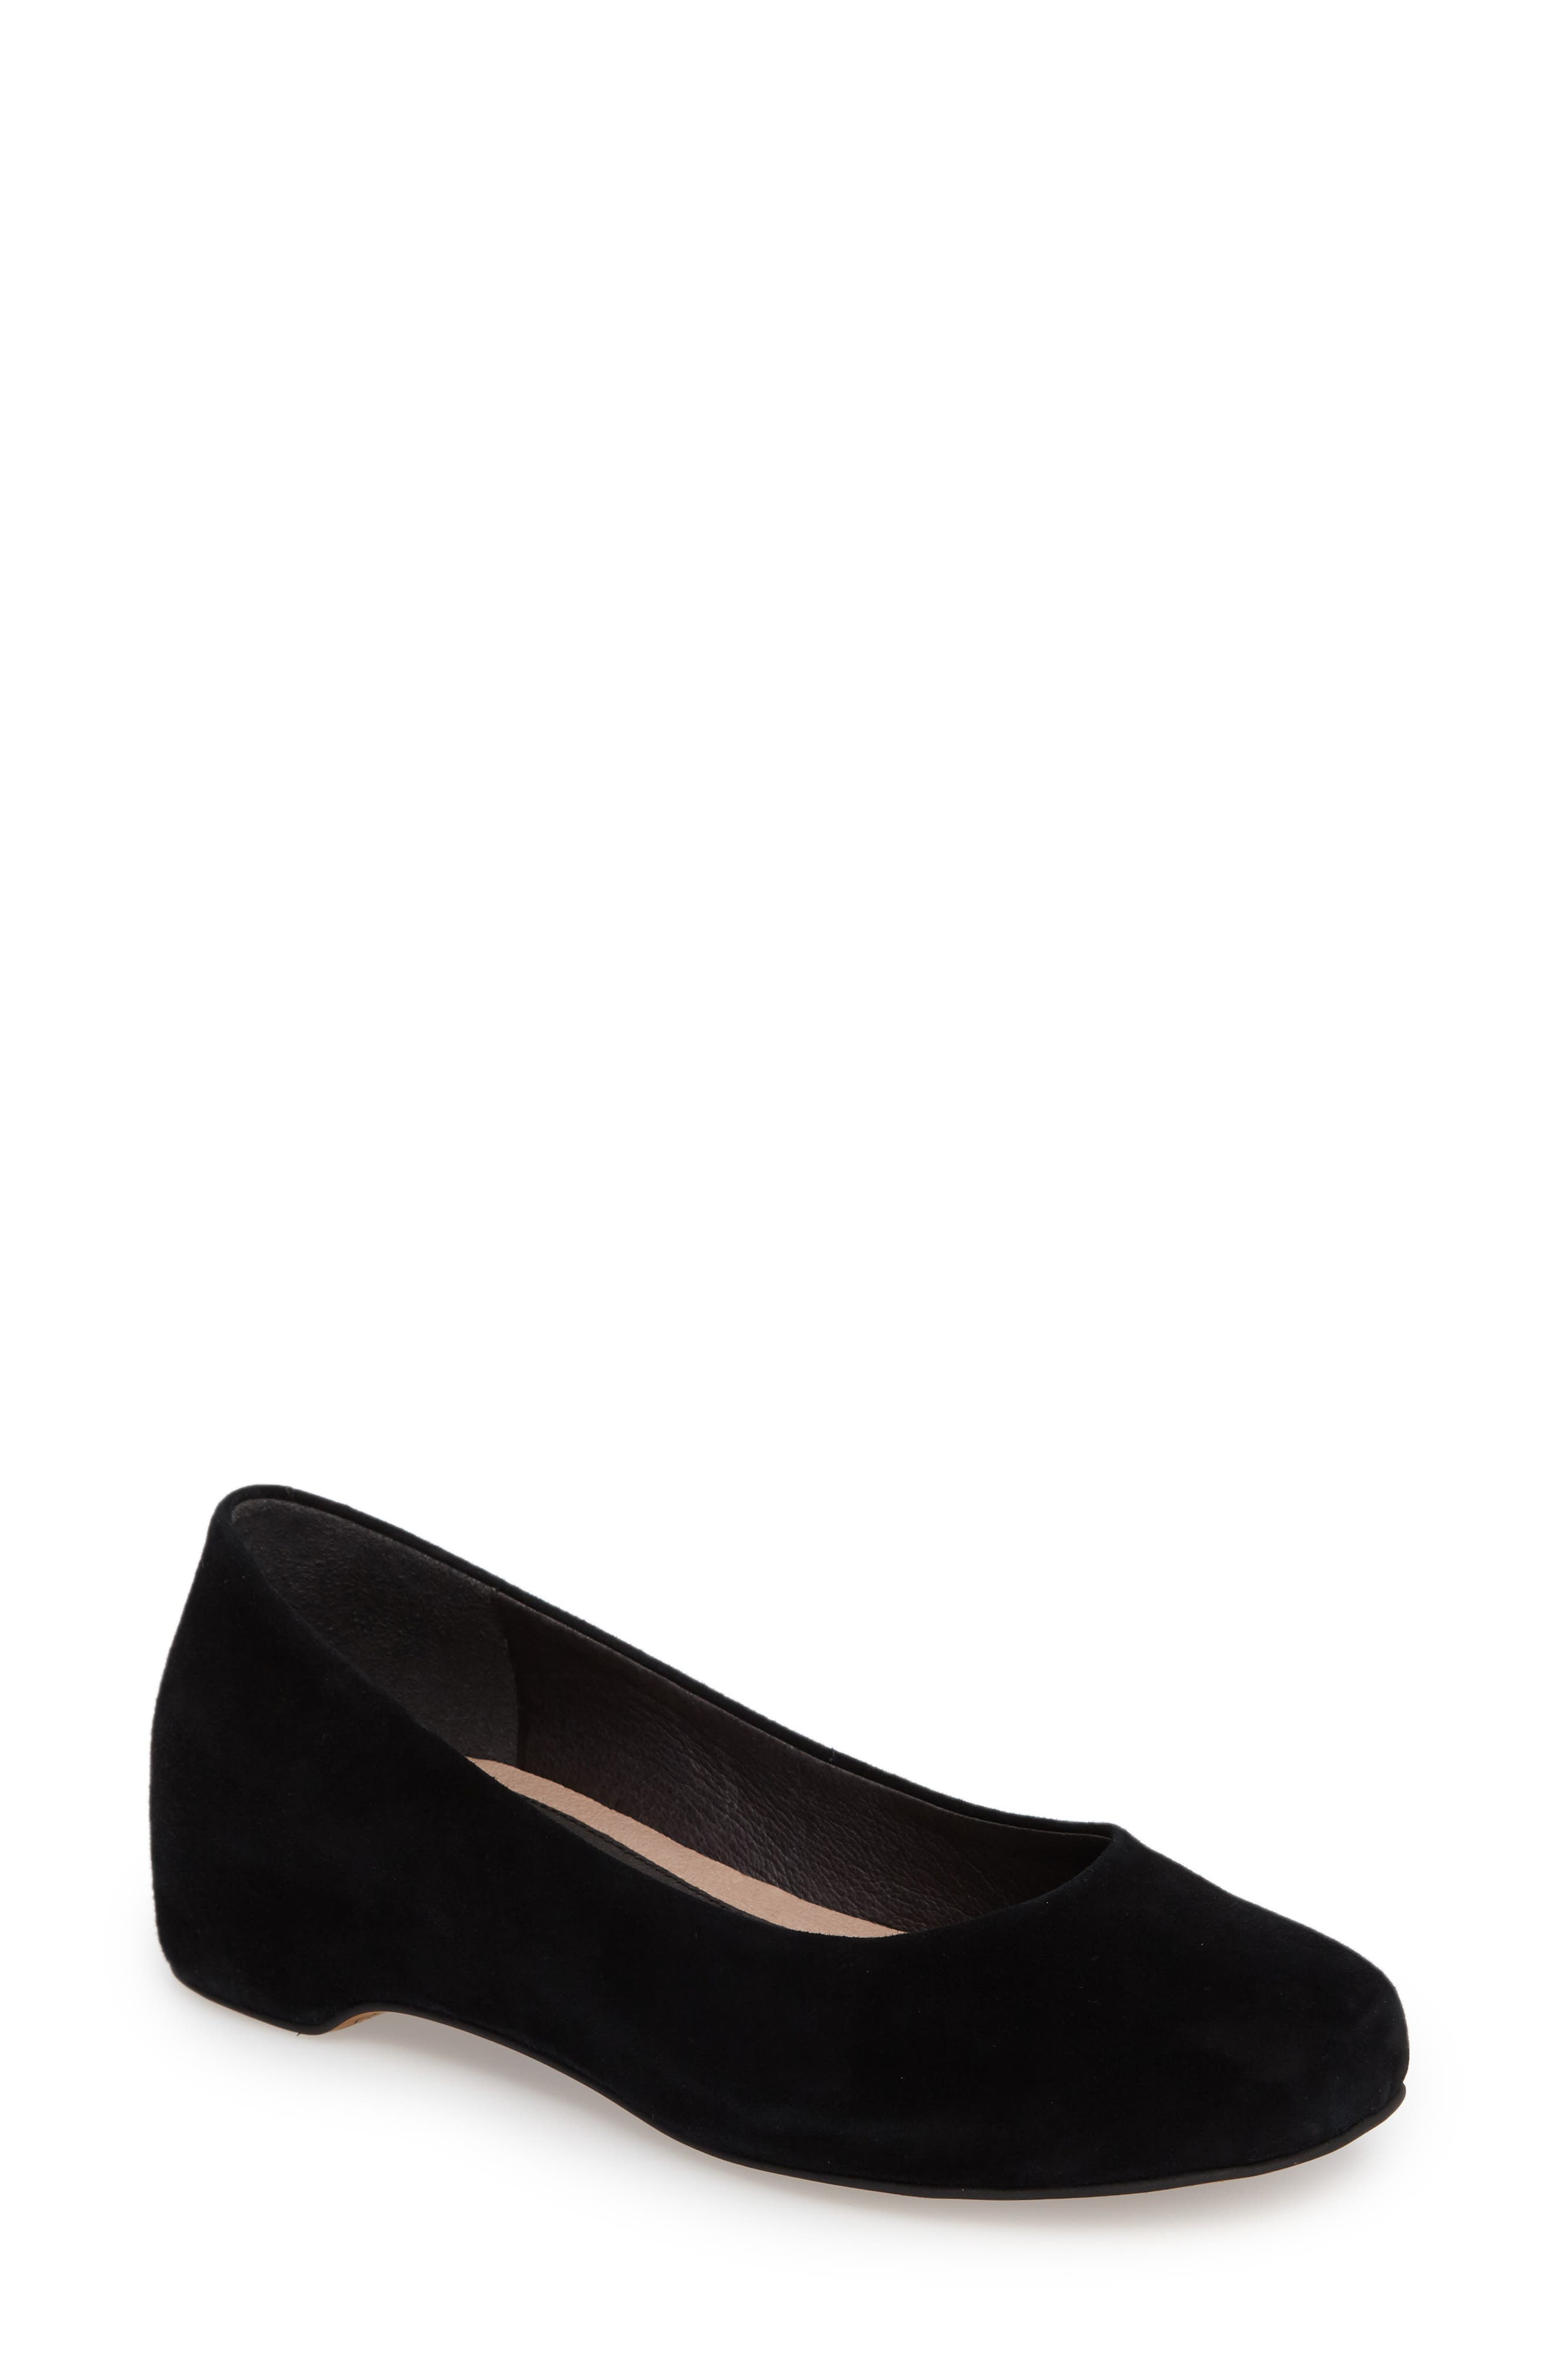 Serena Flat,                         Main,                         color, Black Leather